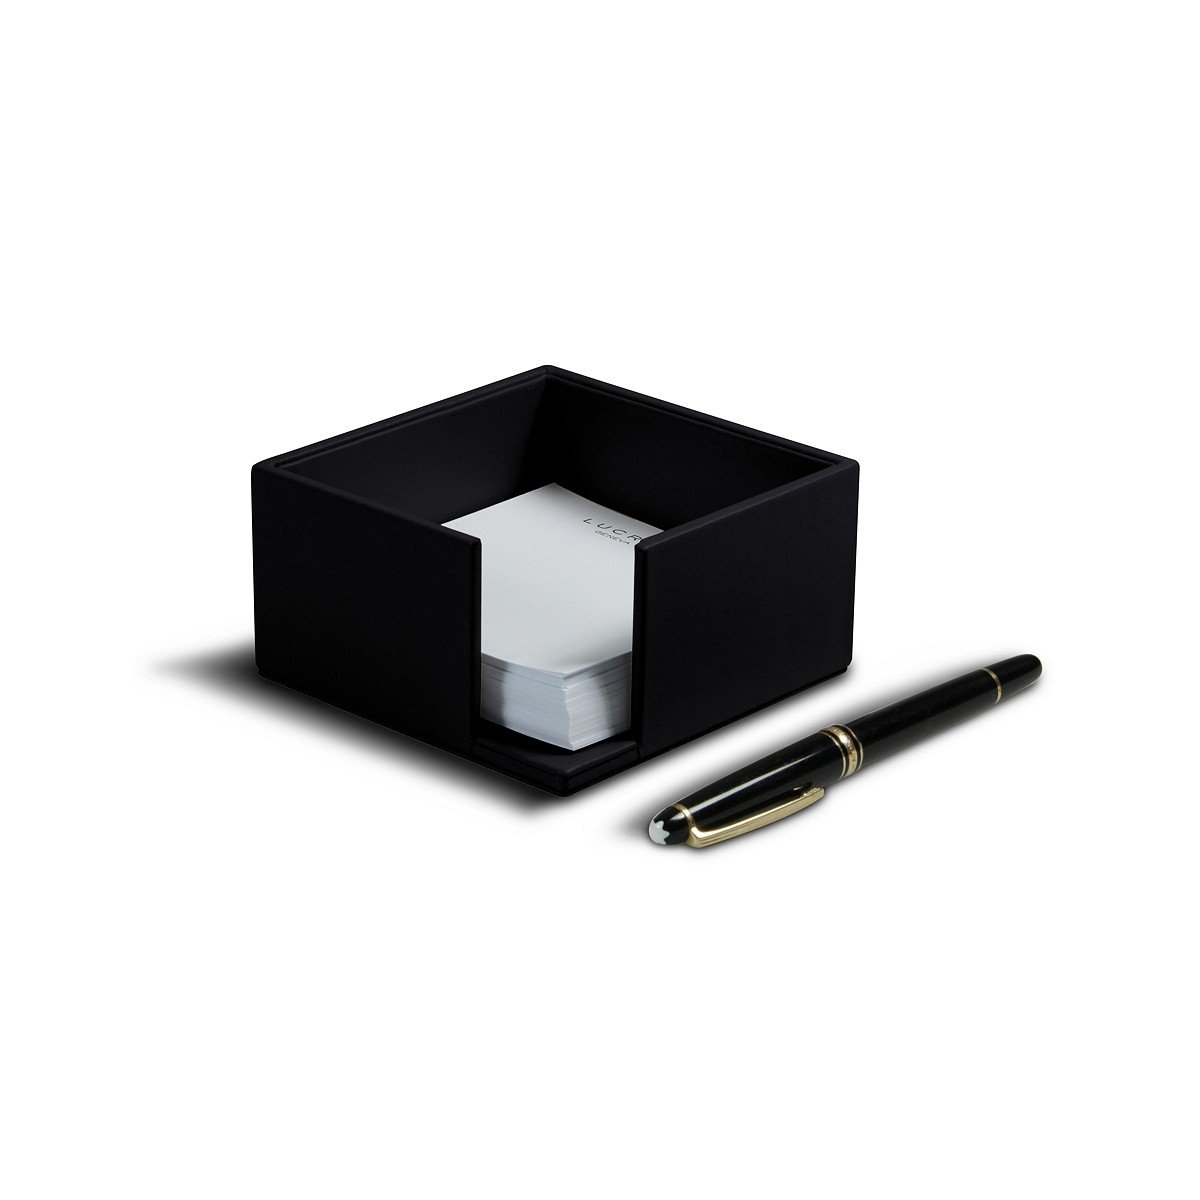 Lucrin - Memo paper holder (3.9'' x 3.9'' x 2.1'') - Black - Smooth Leather